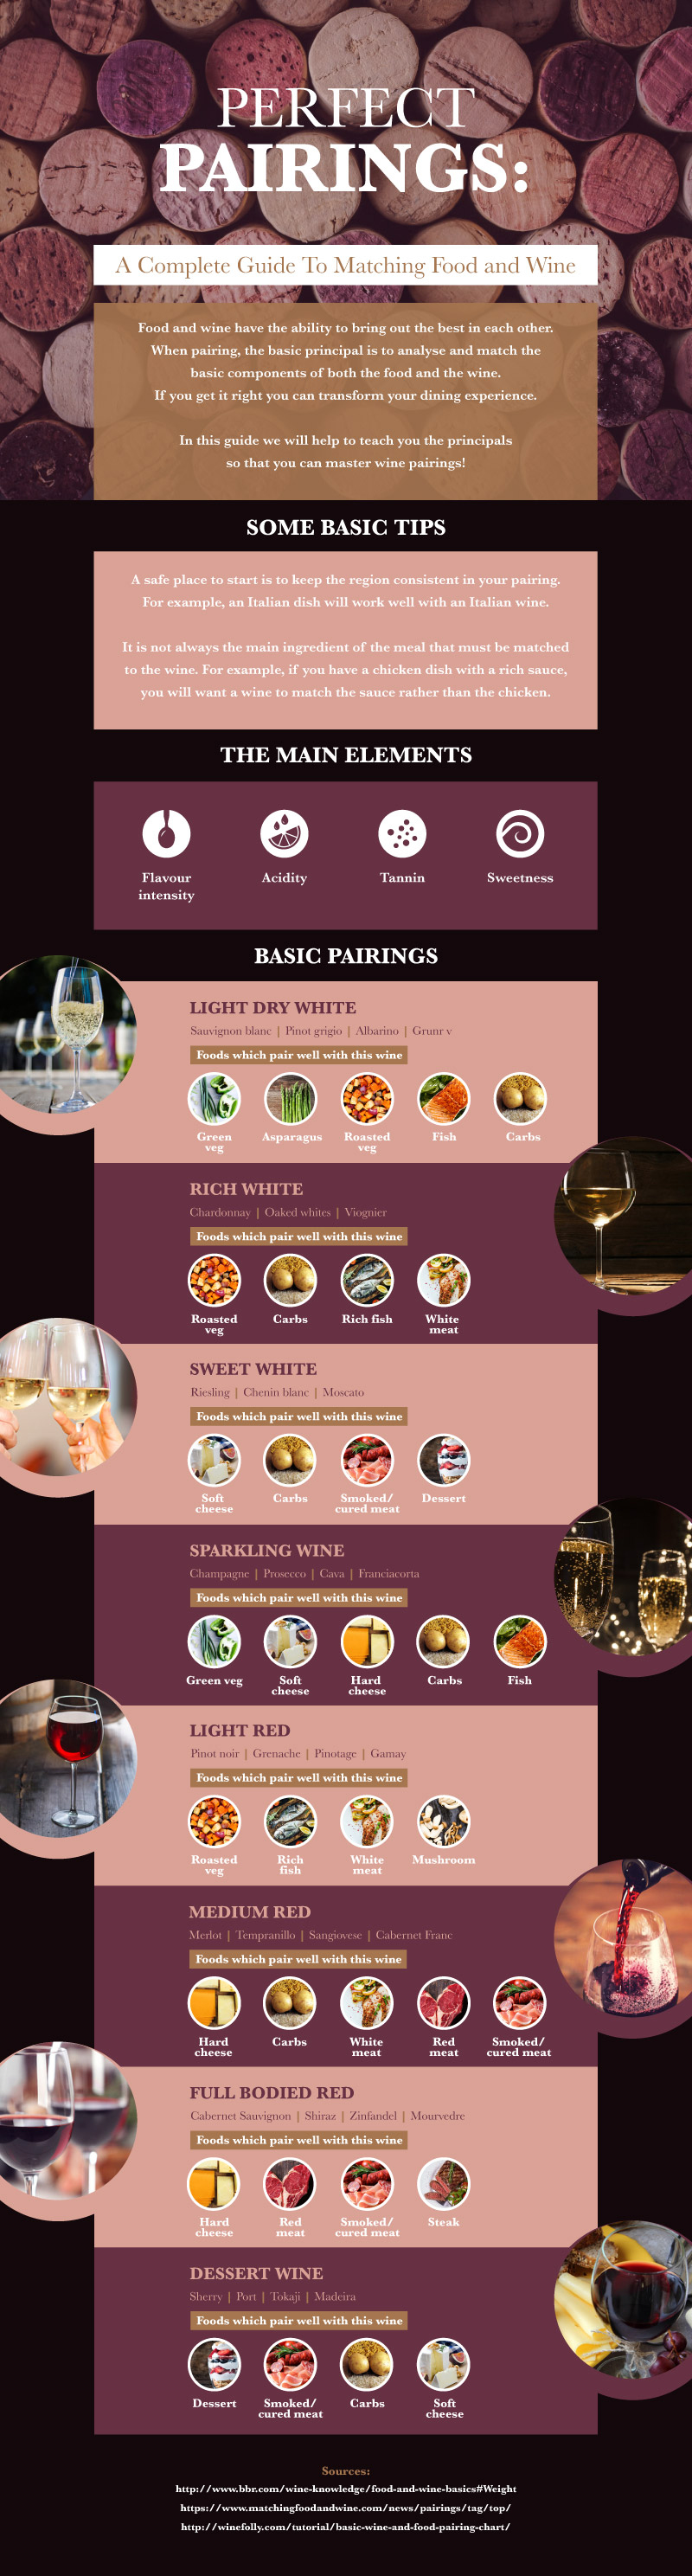 Exactly Which Wines Pair Perfectly With Which